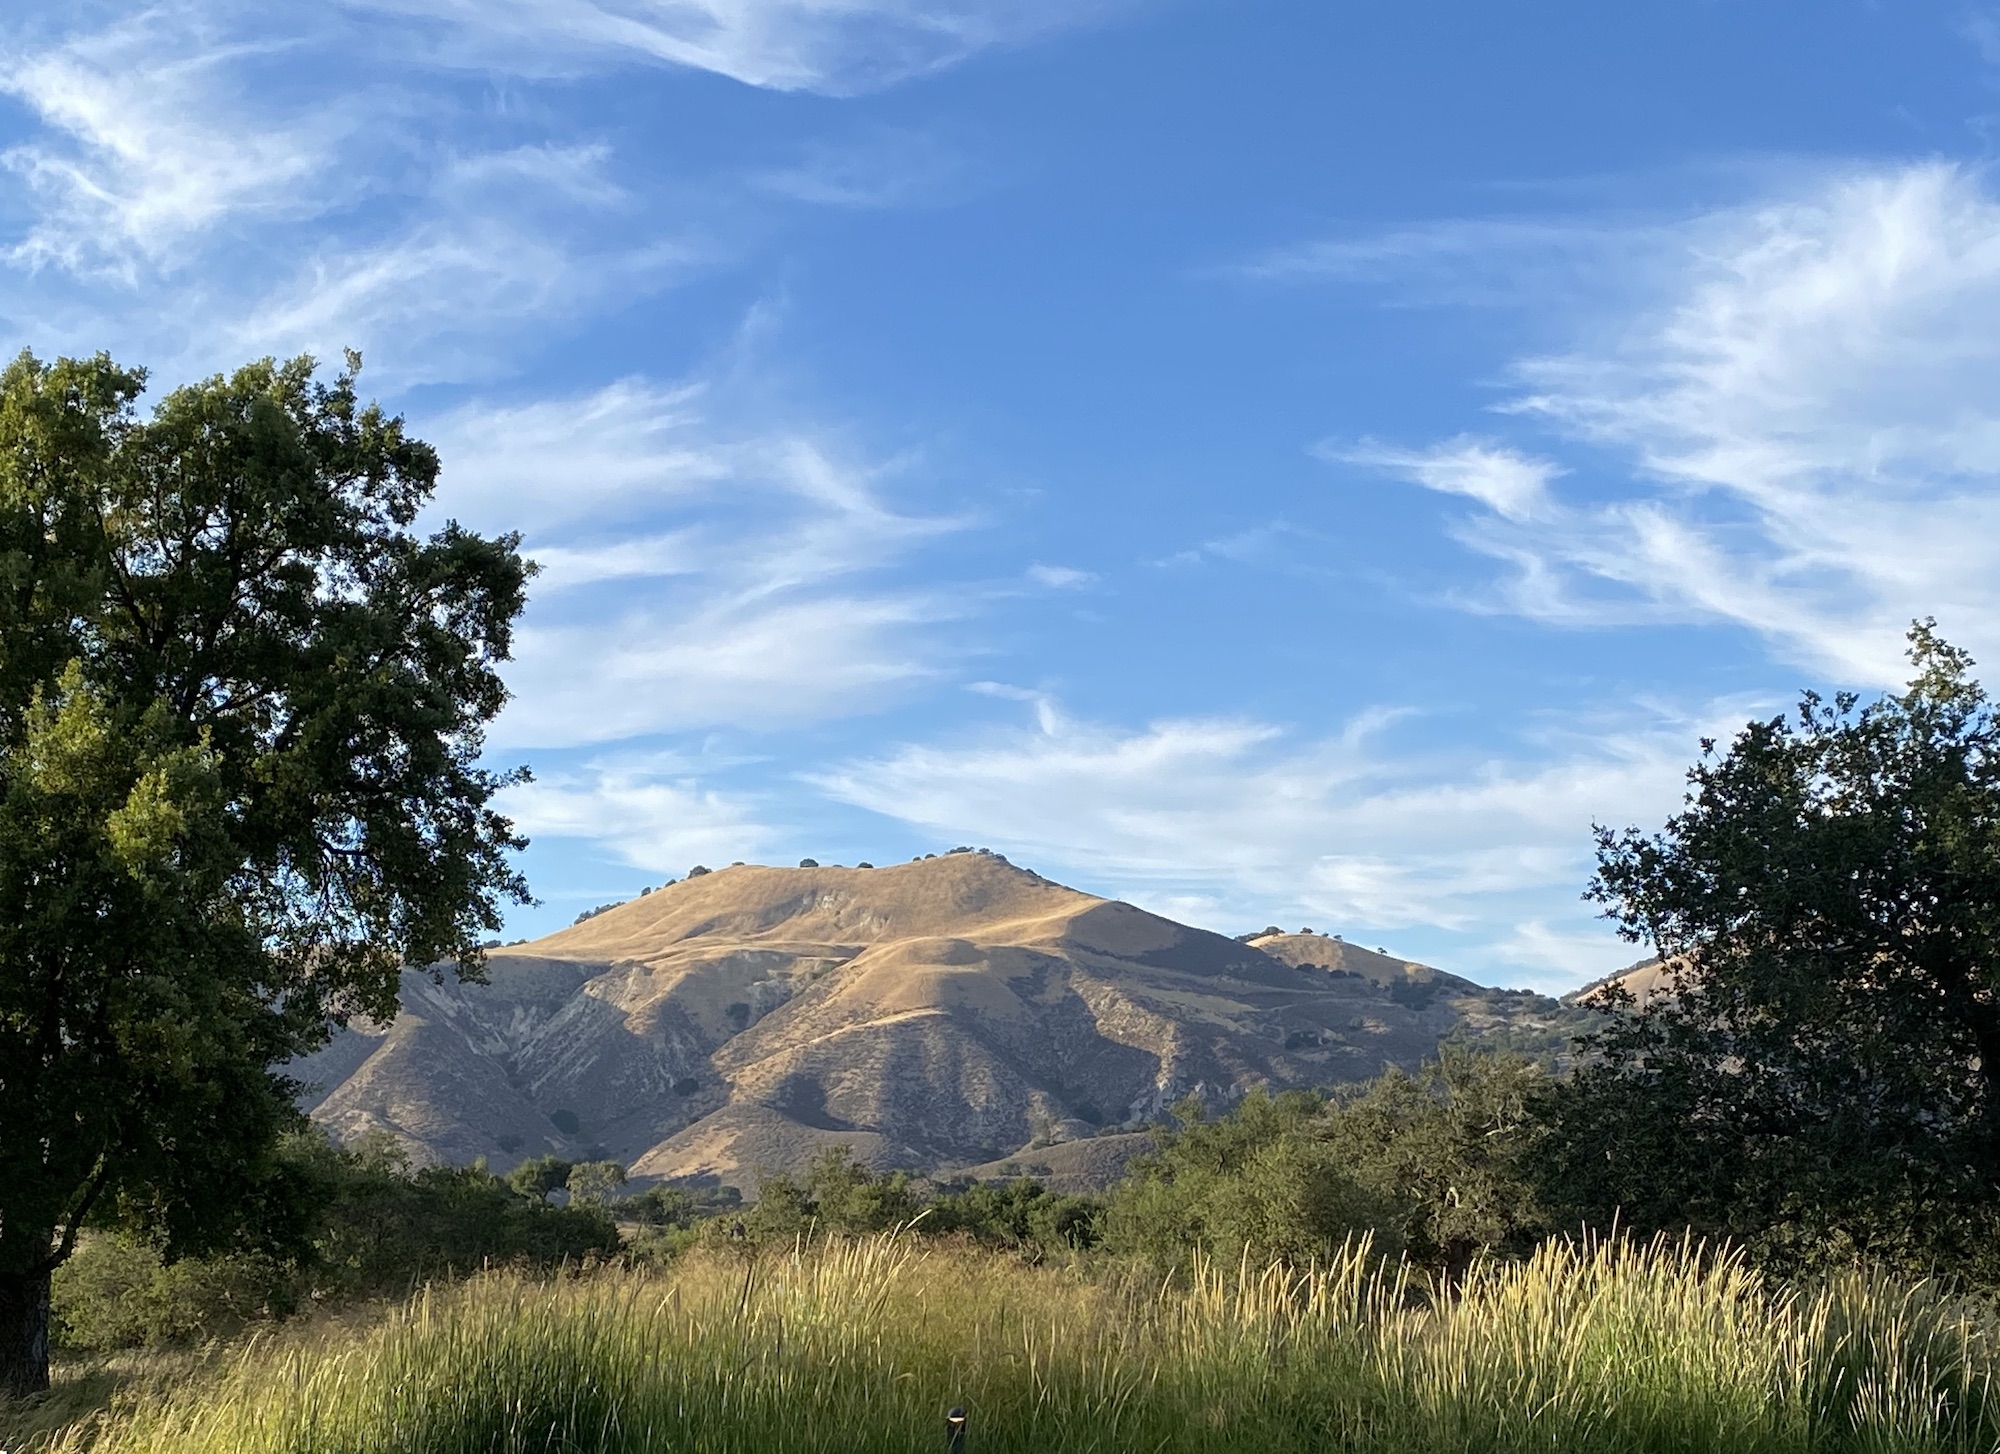 View from the entrance to Rancho La Zaca, where our retreat takes place